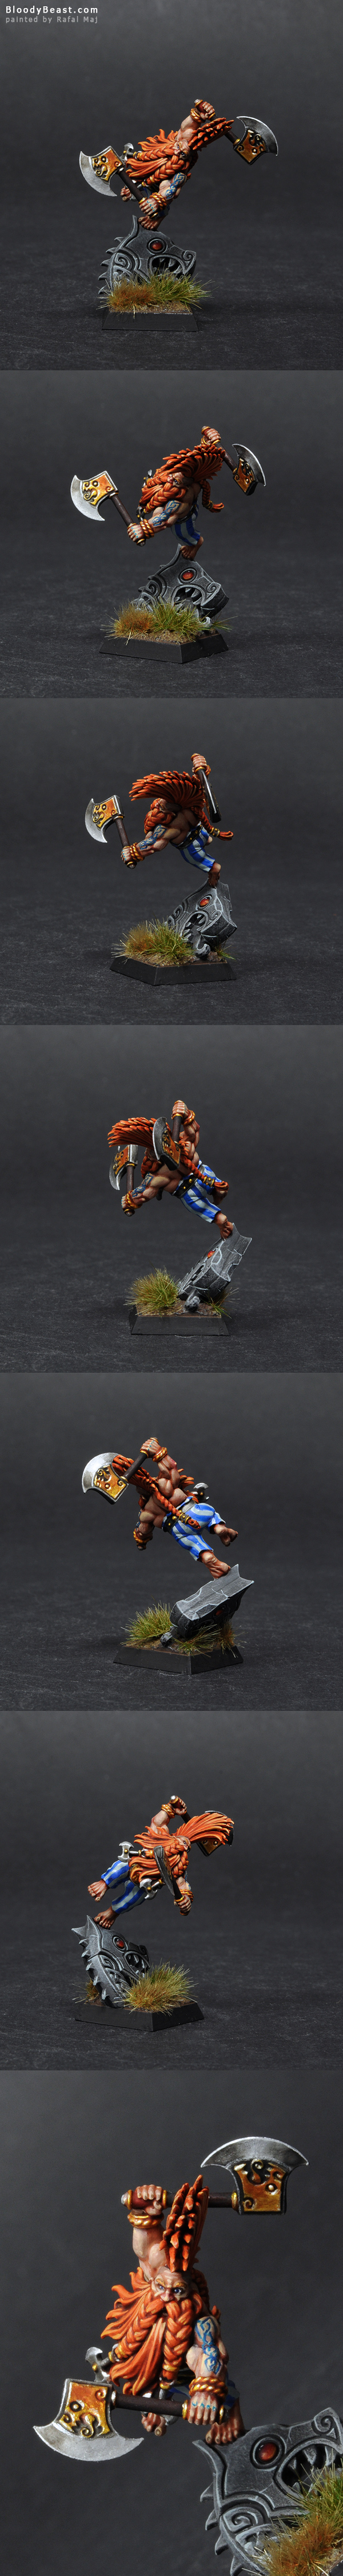 Dwarf Dragon Slayer painted by Rafal Maj (BloodyBeast.com)